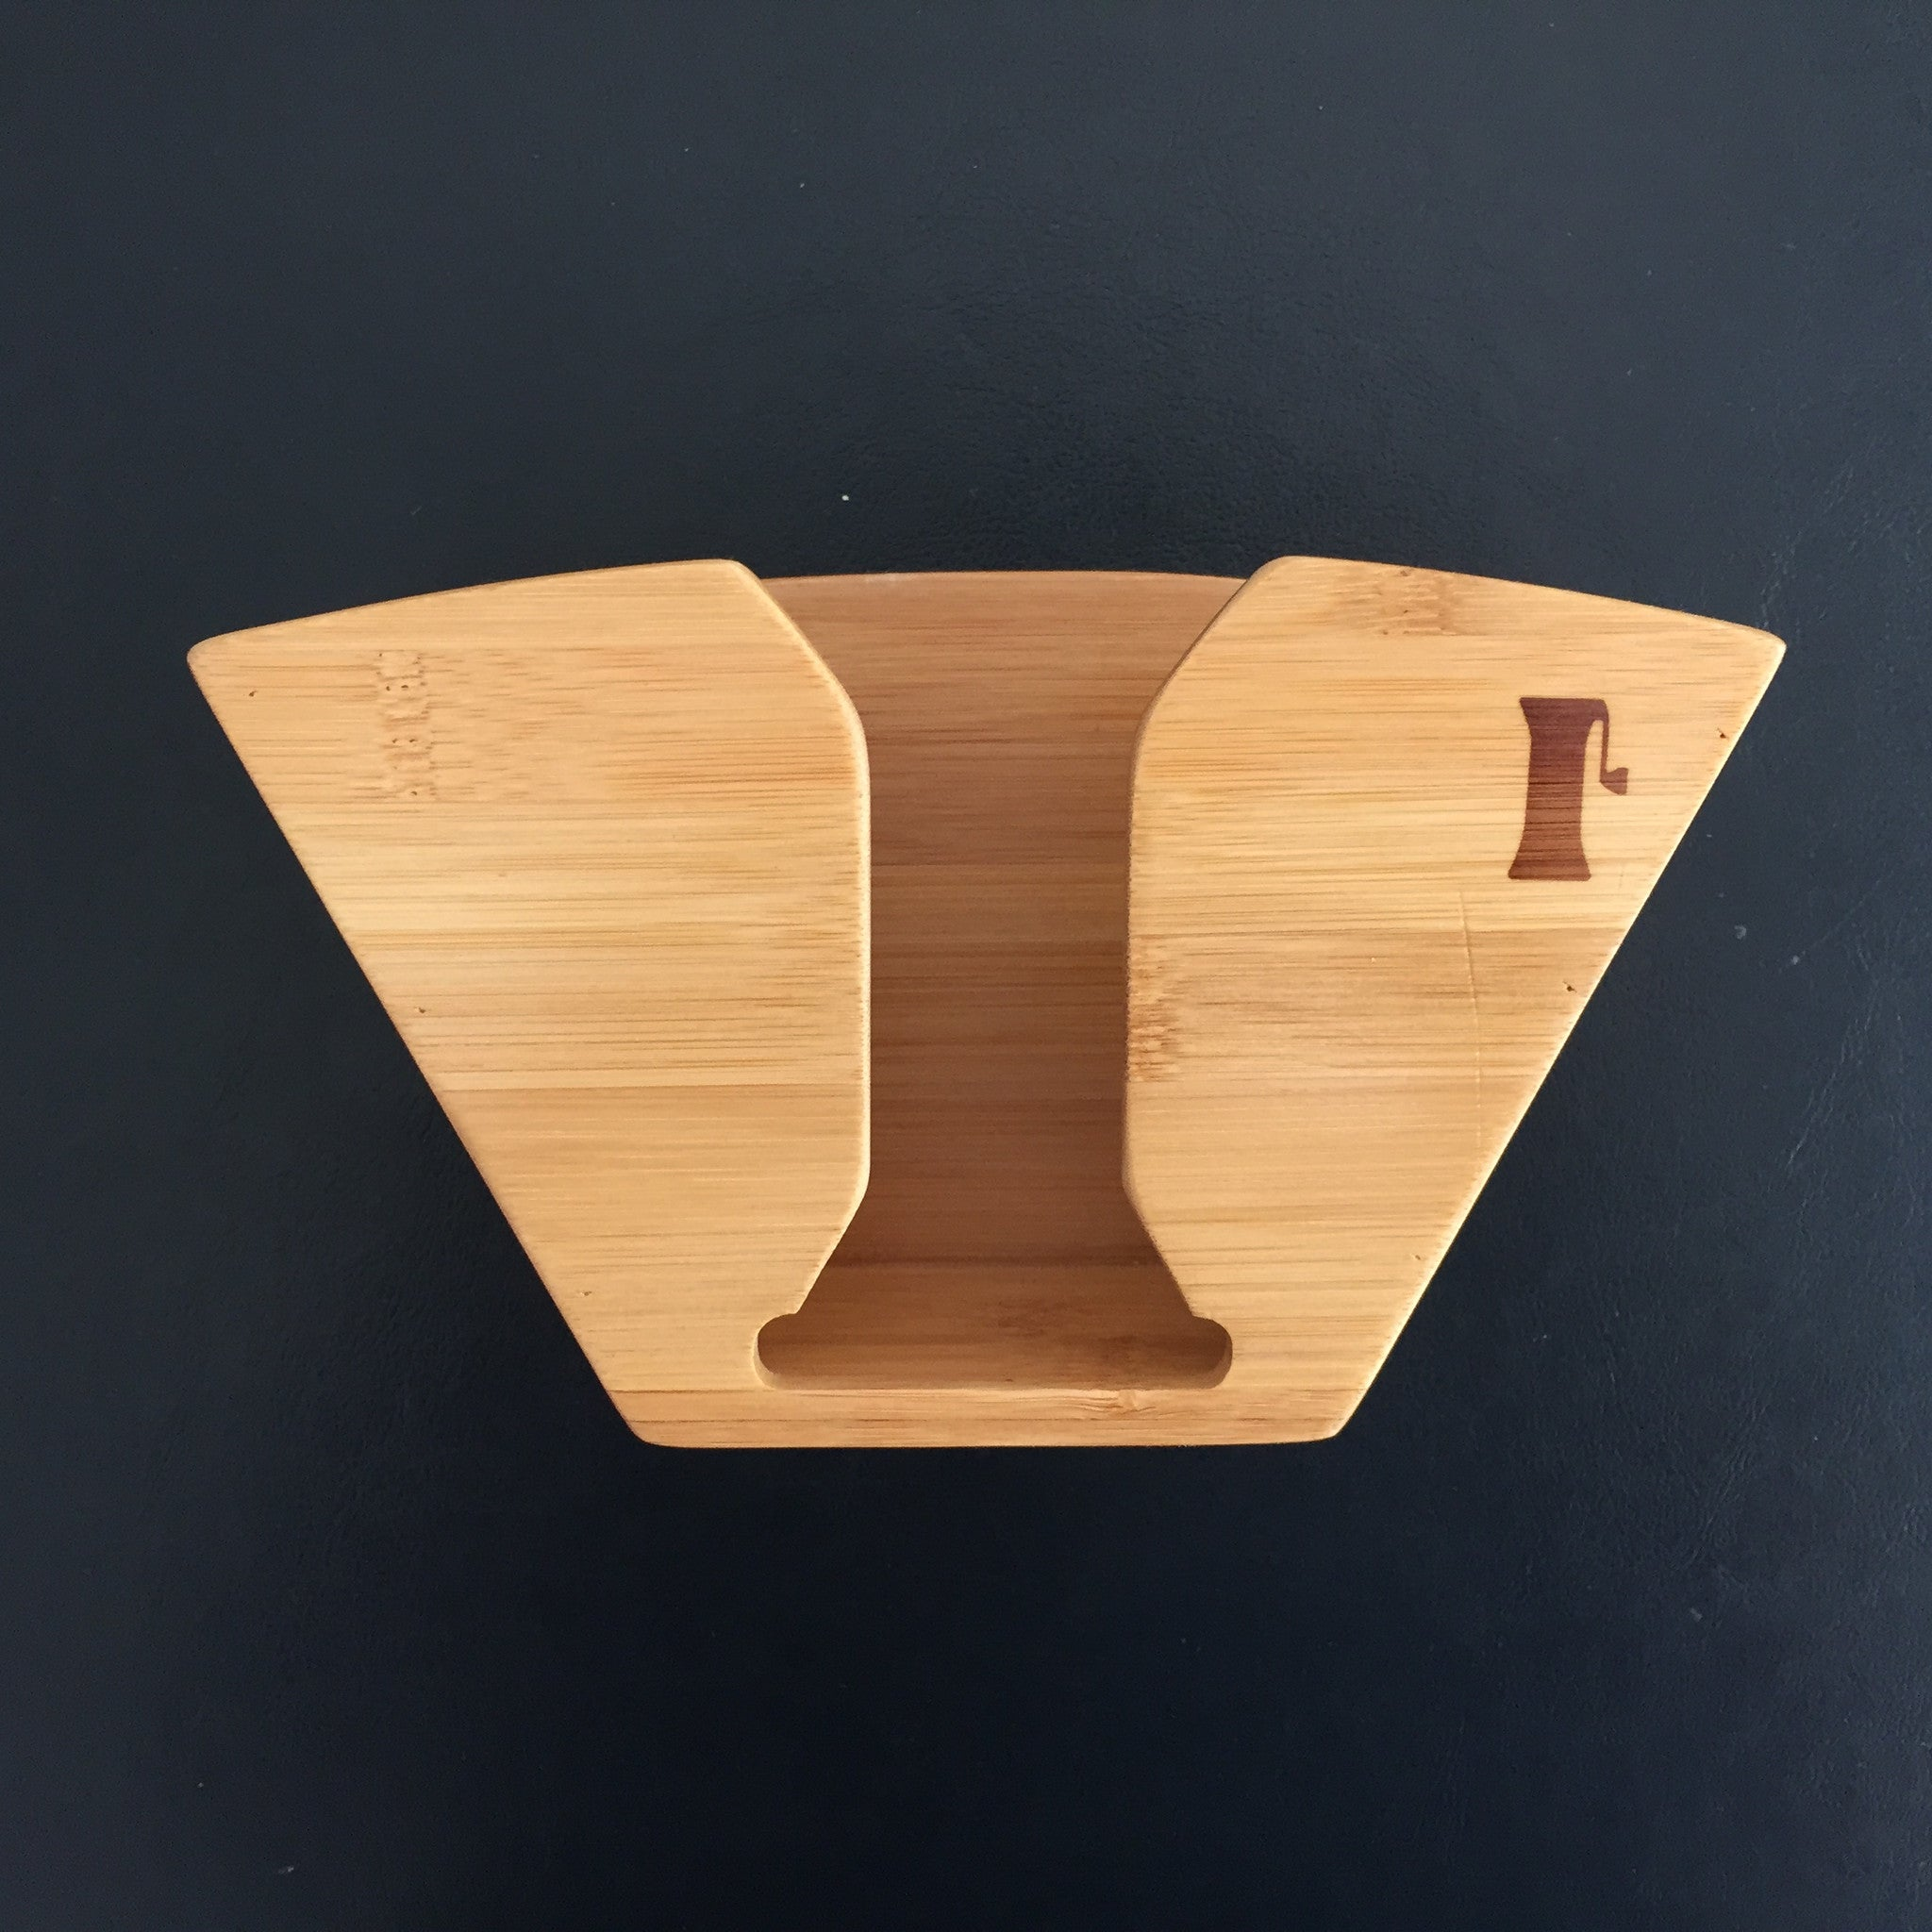 Bamboo Coffee Filter Holder by Handground